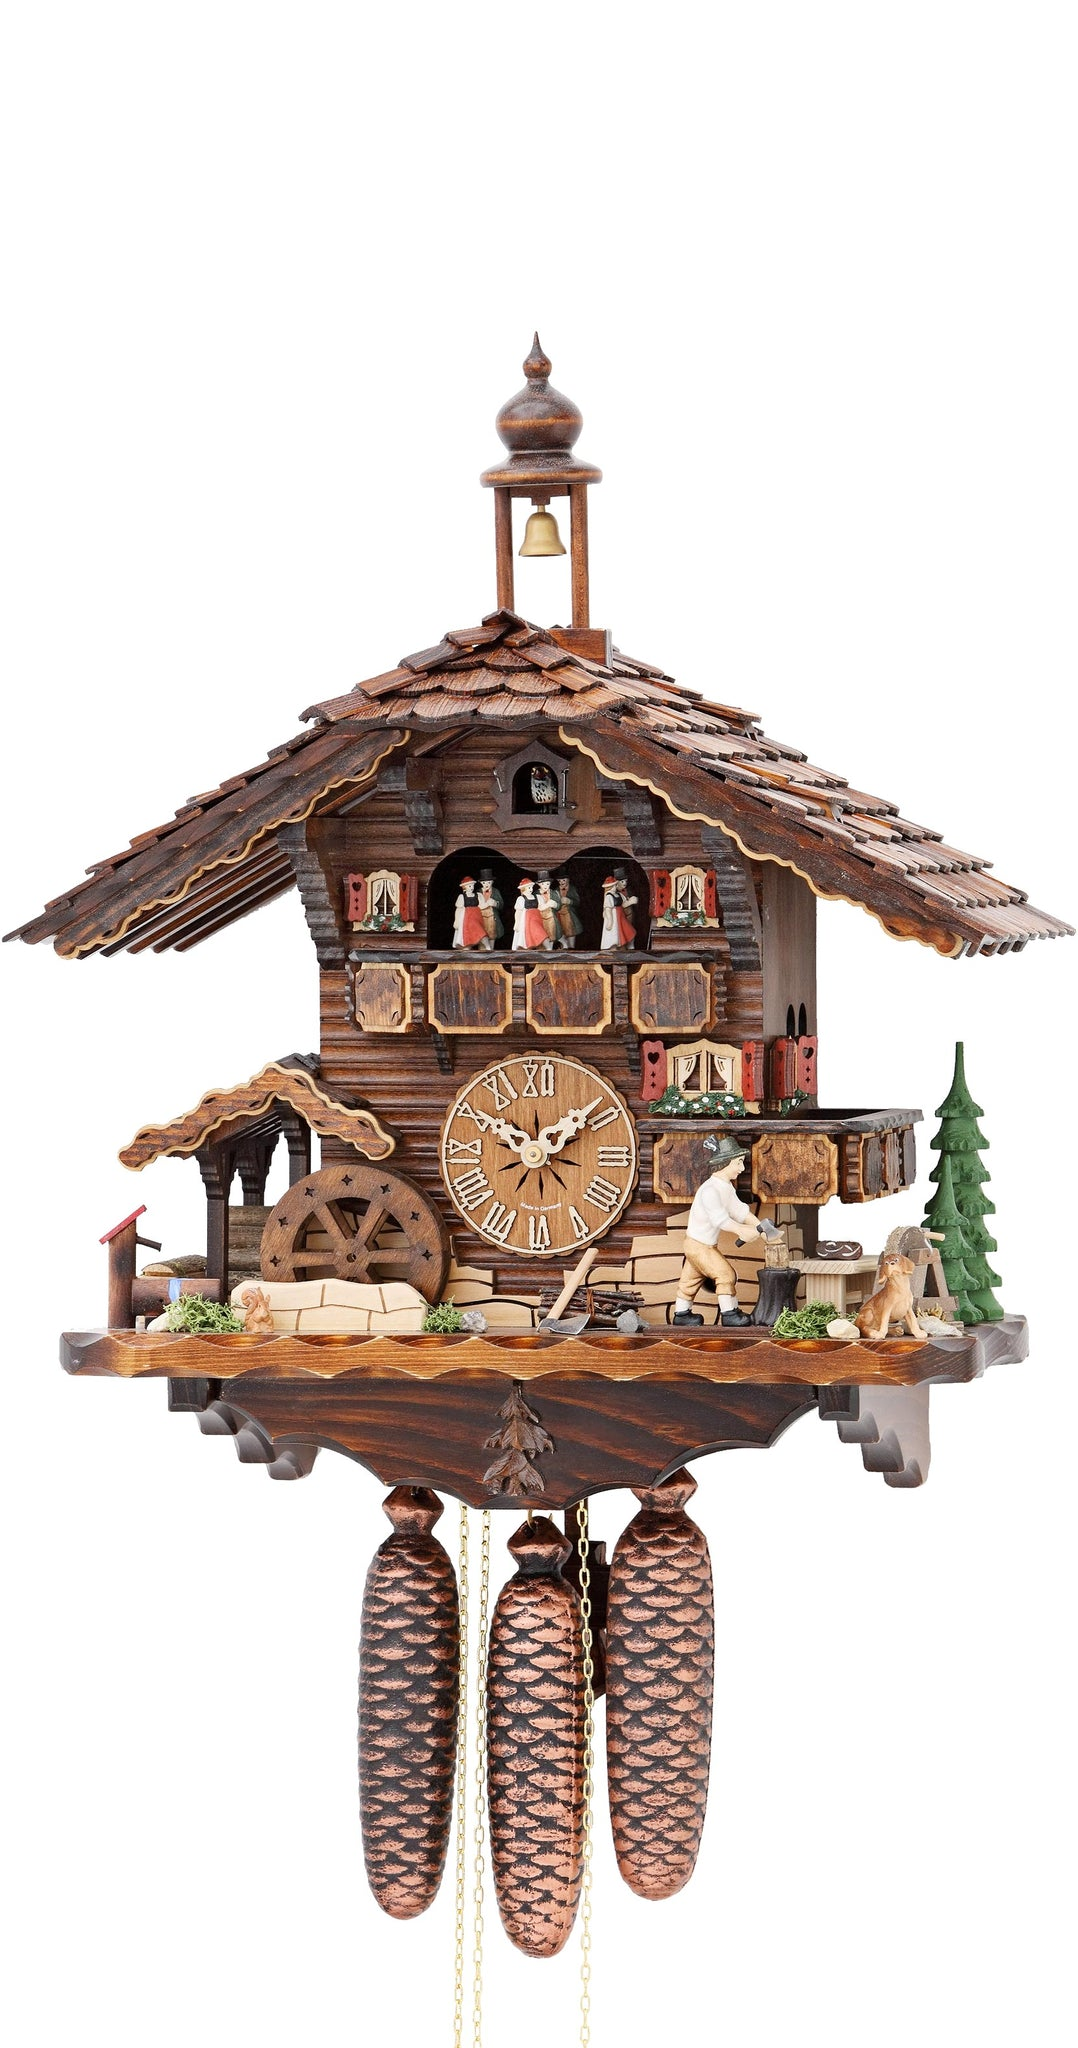 Cuckoo Clock Moving Wood Chopper Mill Wheel 8-Day with Music - Cuckoo Clock Meister